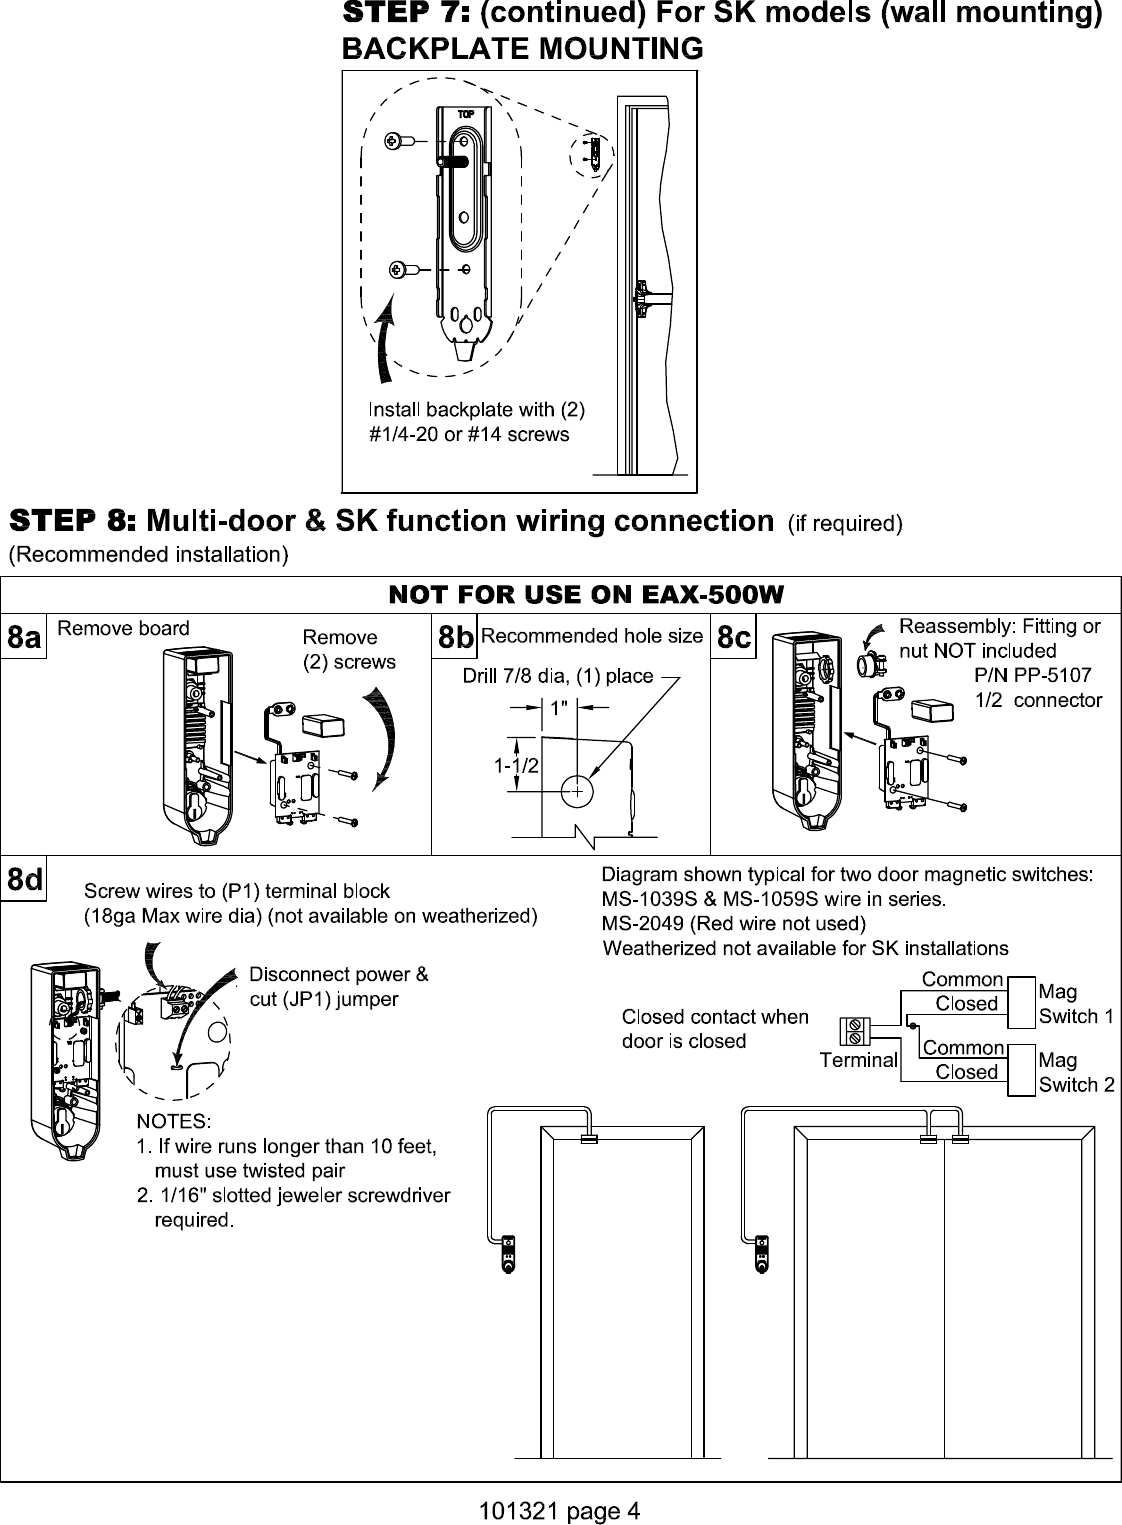 [SCHEMATICS_48ZD]  Detex EAX 500 Installation Instructions 101321Press Quality | Detex Wiring Diagrams |  | UserManual.wiki